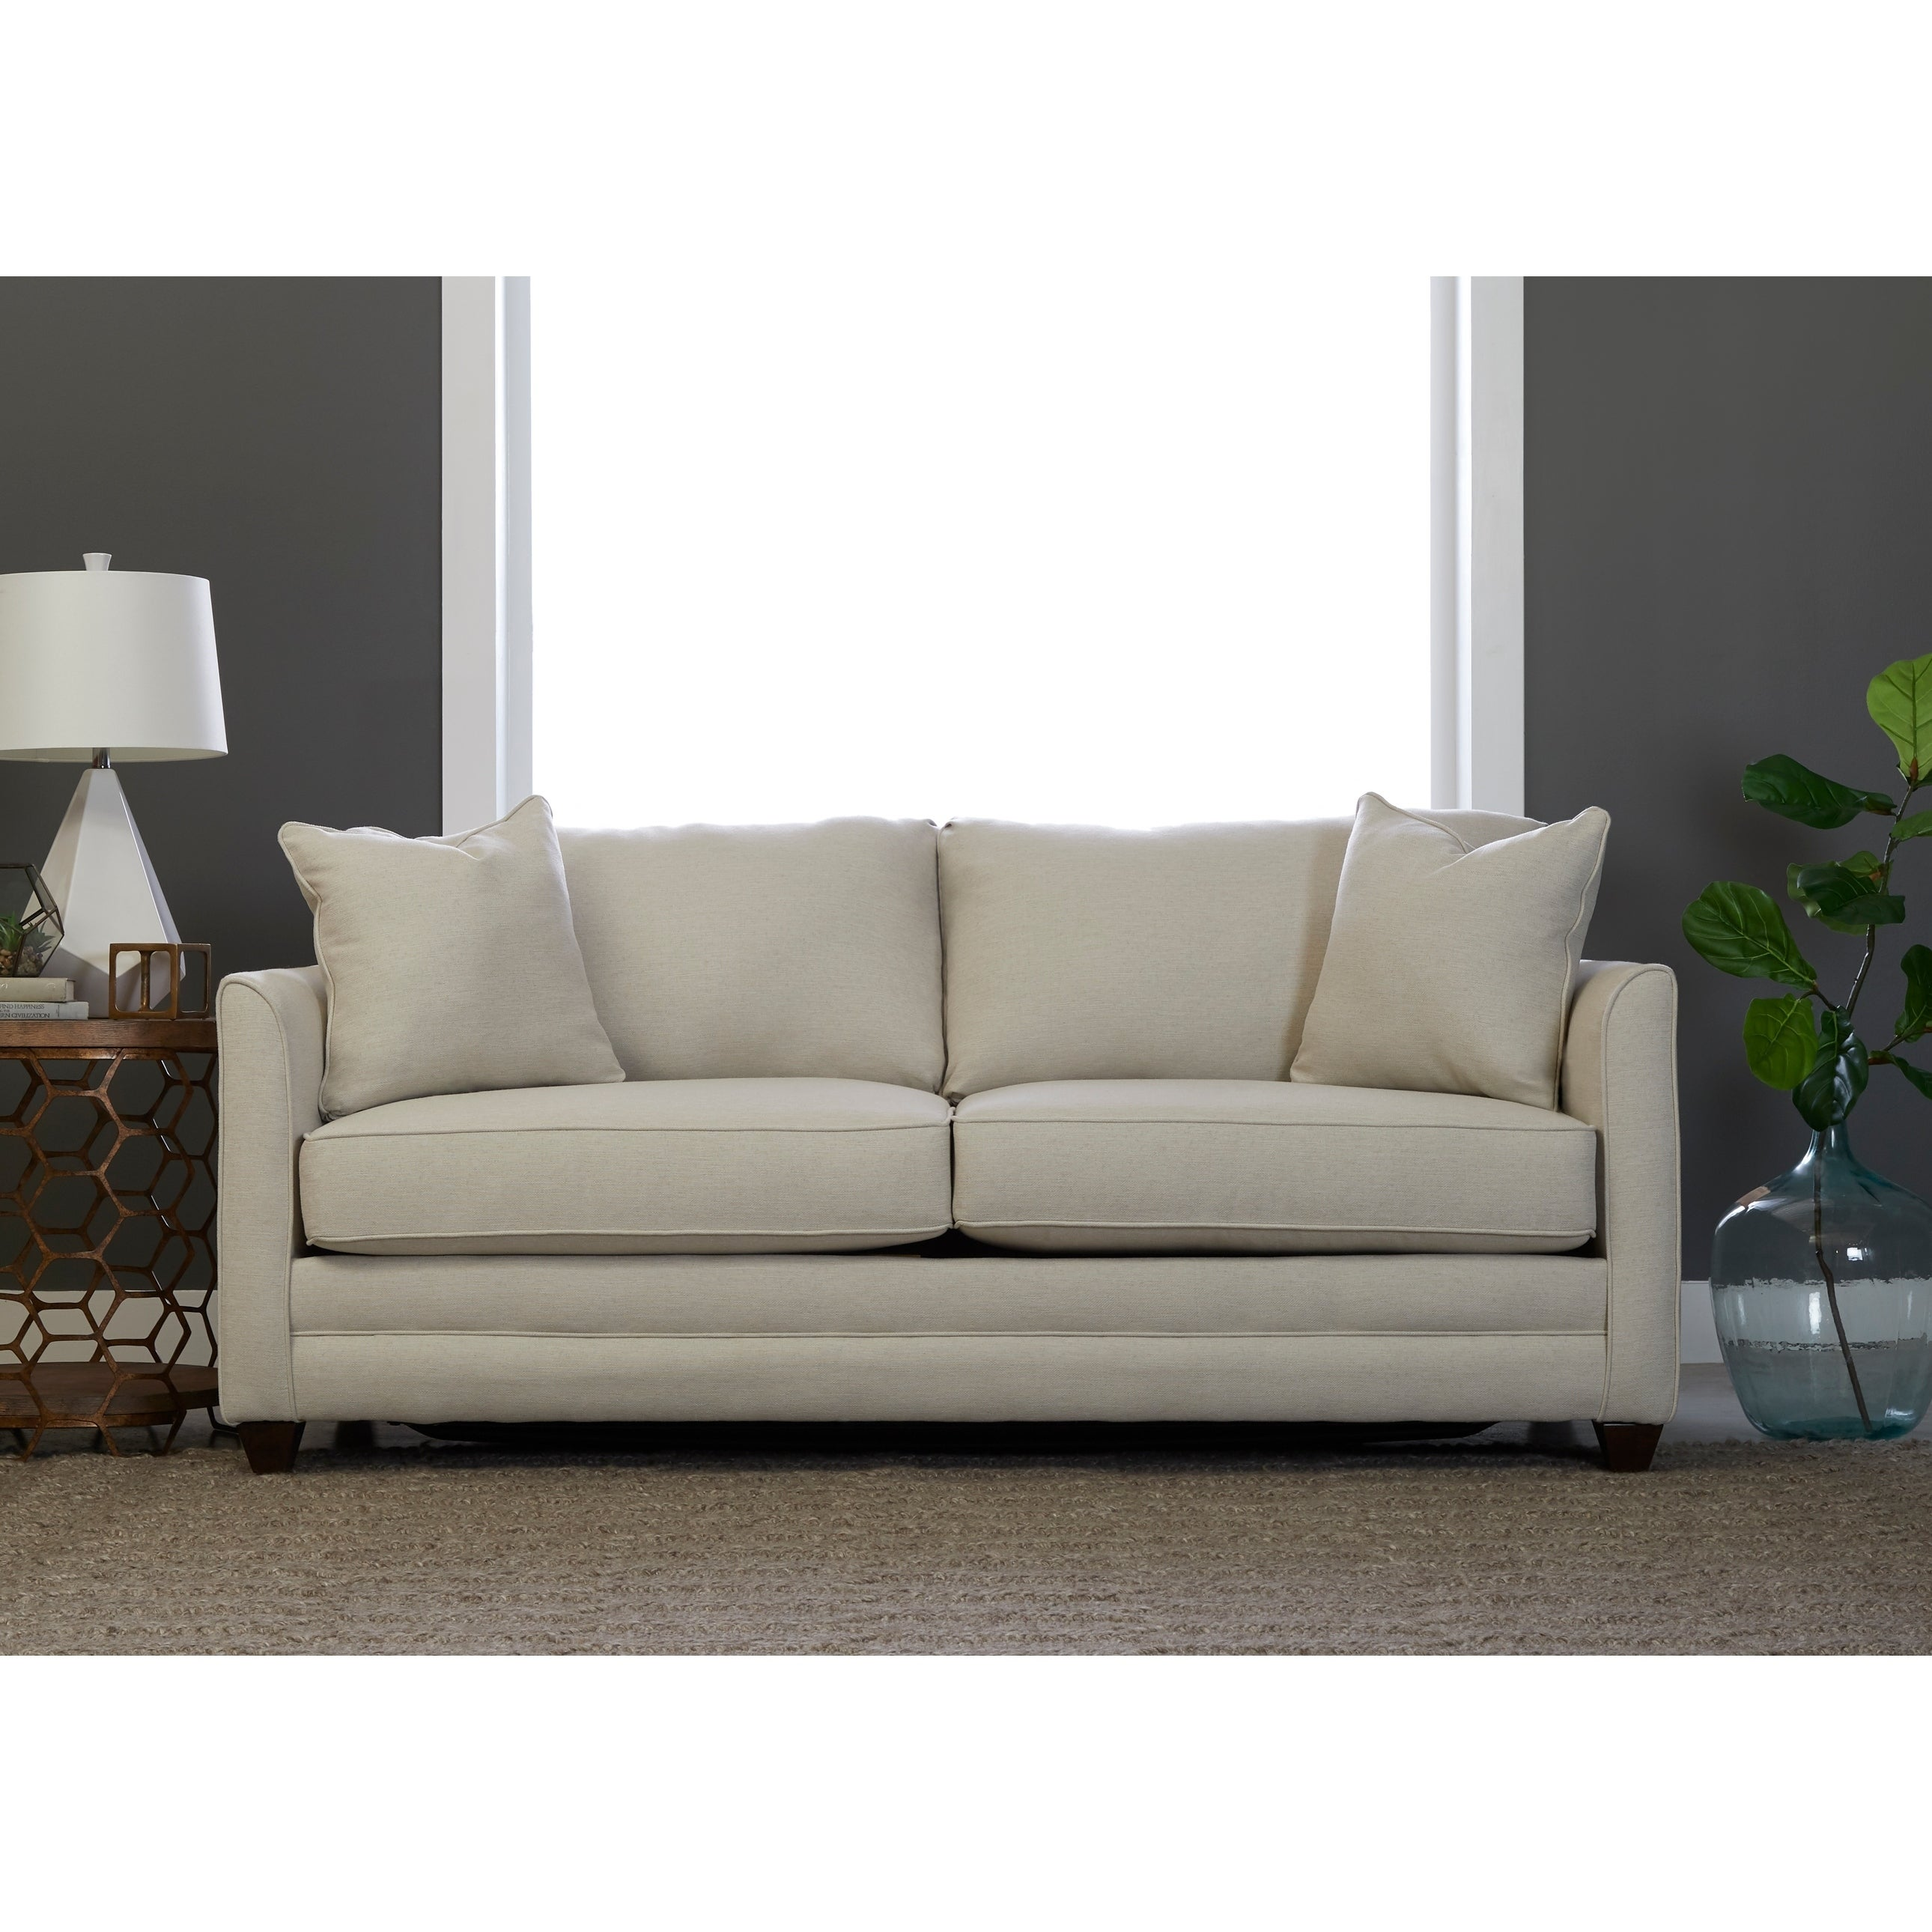 Klaussner sleeper sofa reviews klaussner sleeper sofa reviews sofas compare prices at nextag Sleeper sofa prices